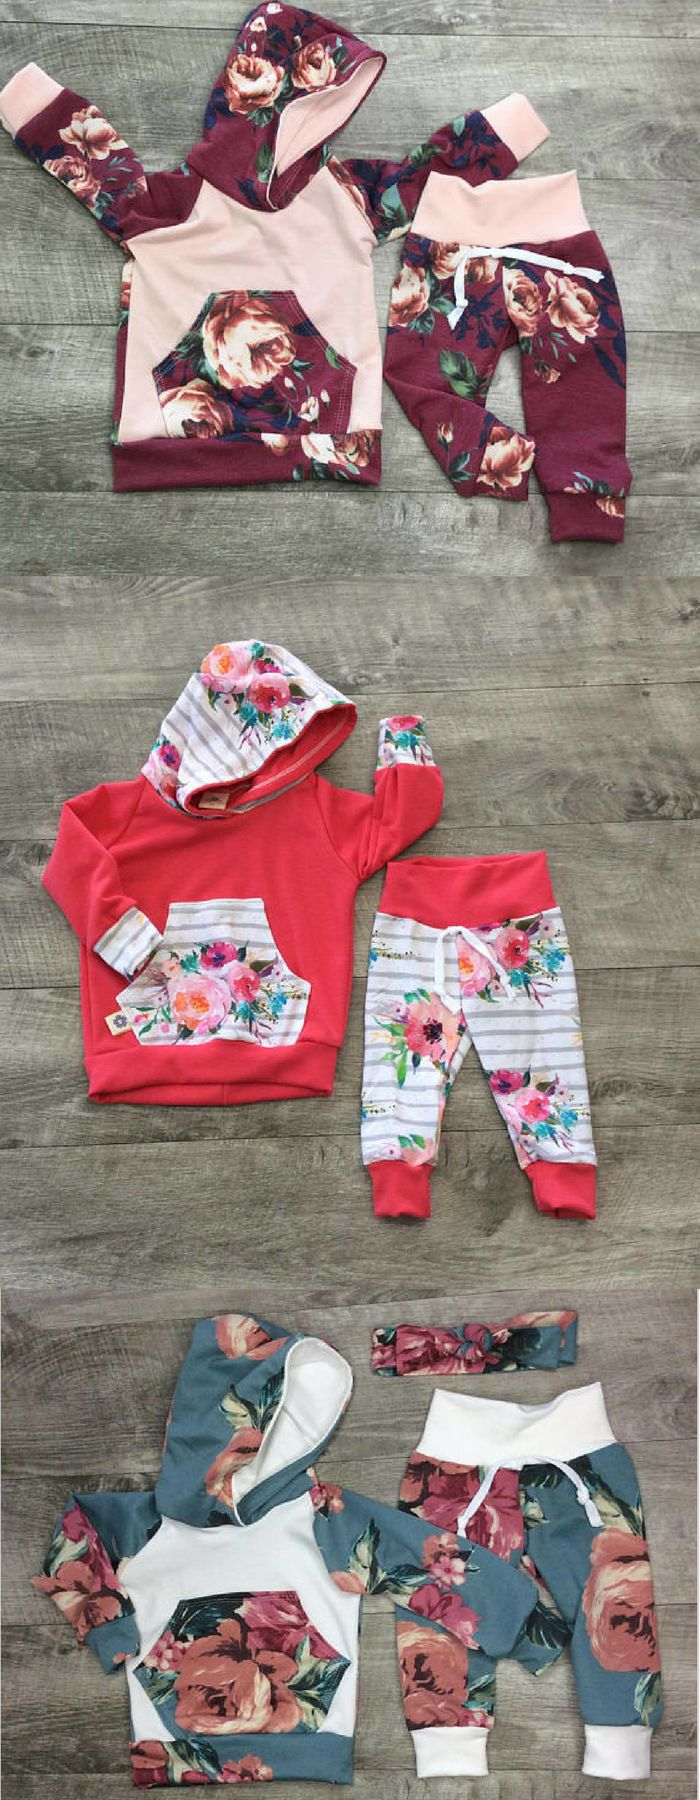 I love these adorable little girl sweatsuits!! I already ordered one for my niece!! #affiliatelink #fashion #baby #babygirl #kidsfashion